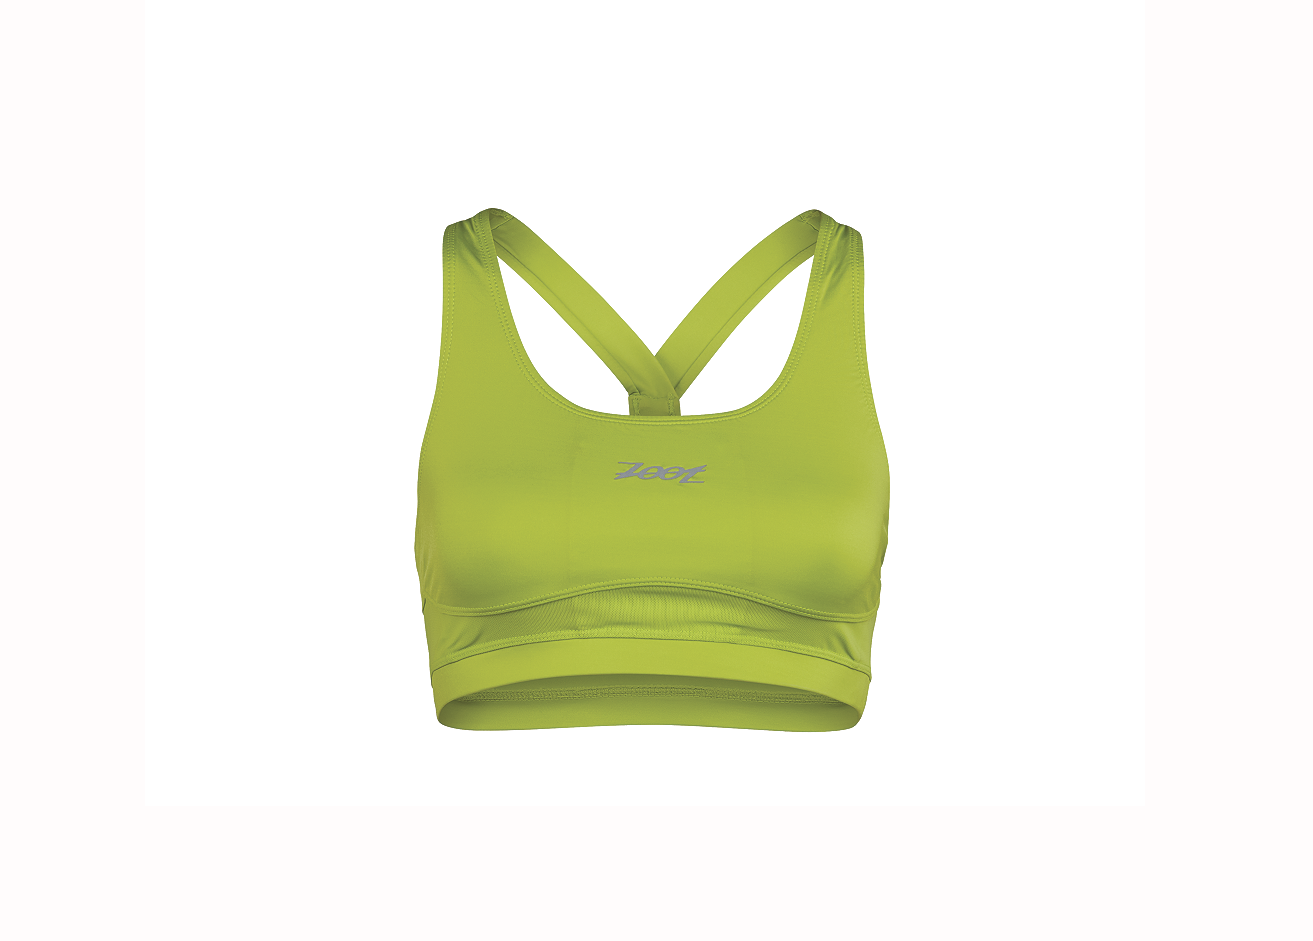 53c2a21359 The Best Sports Bras for Every Shape